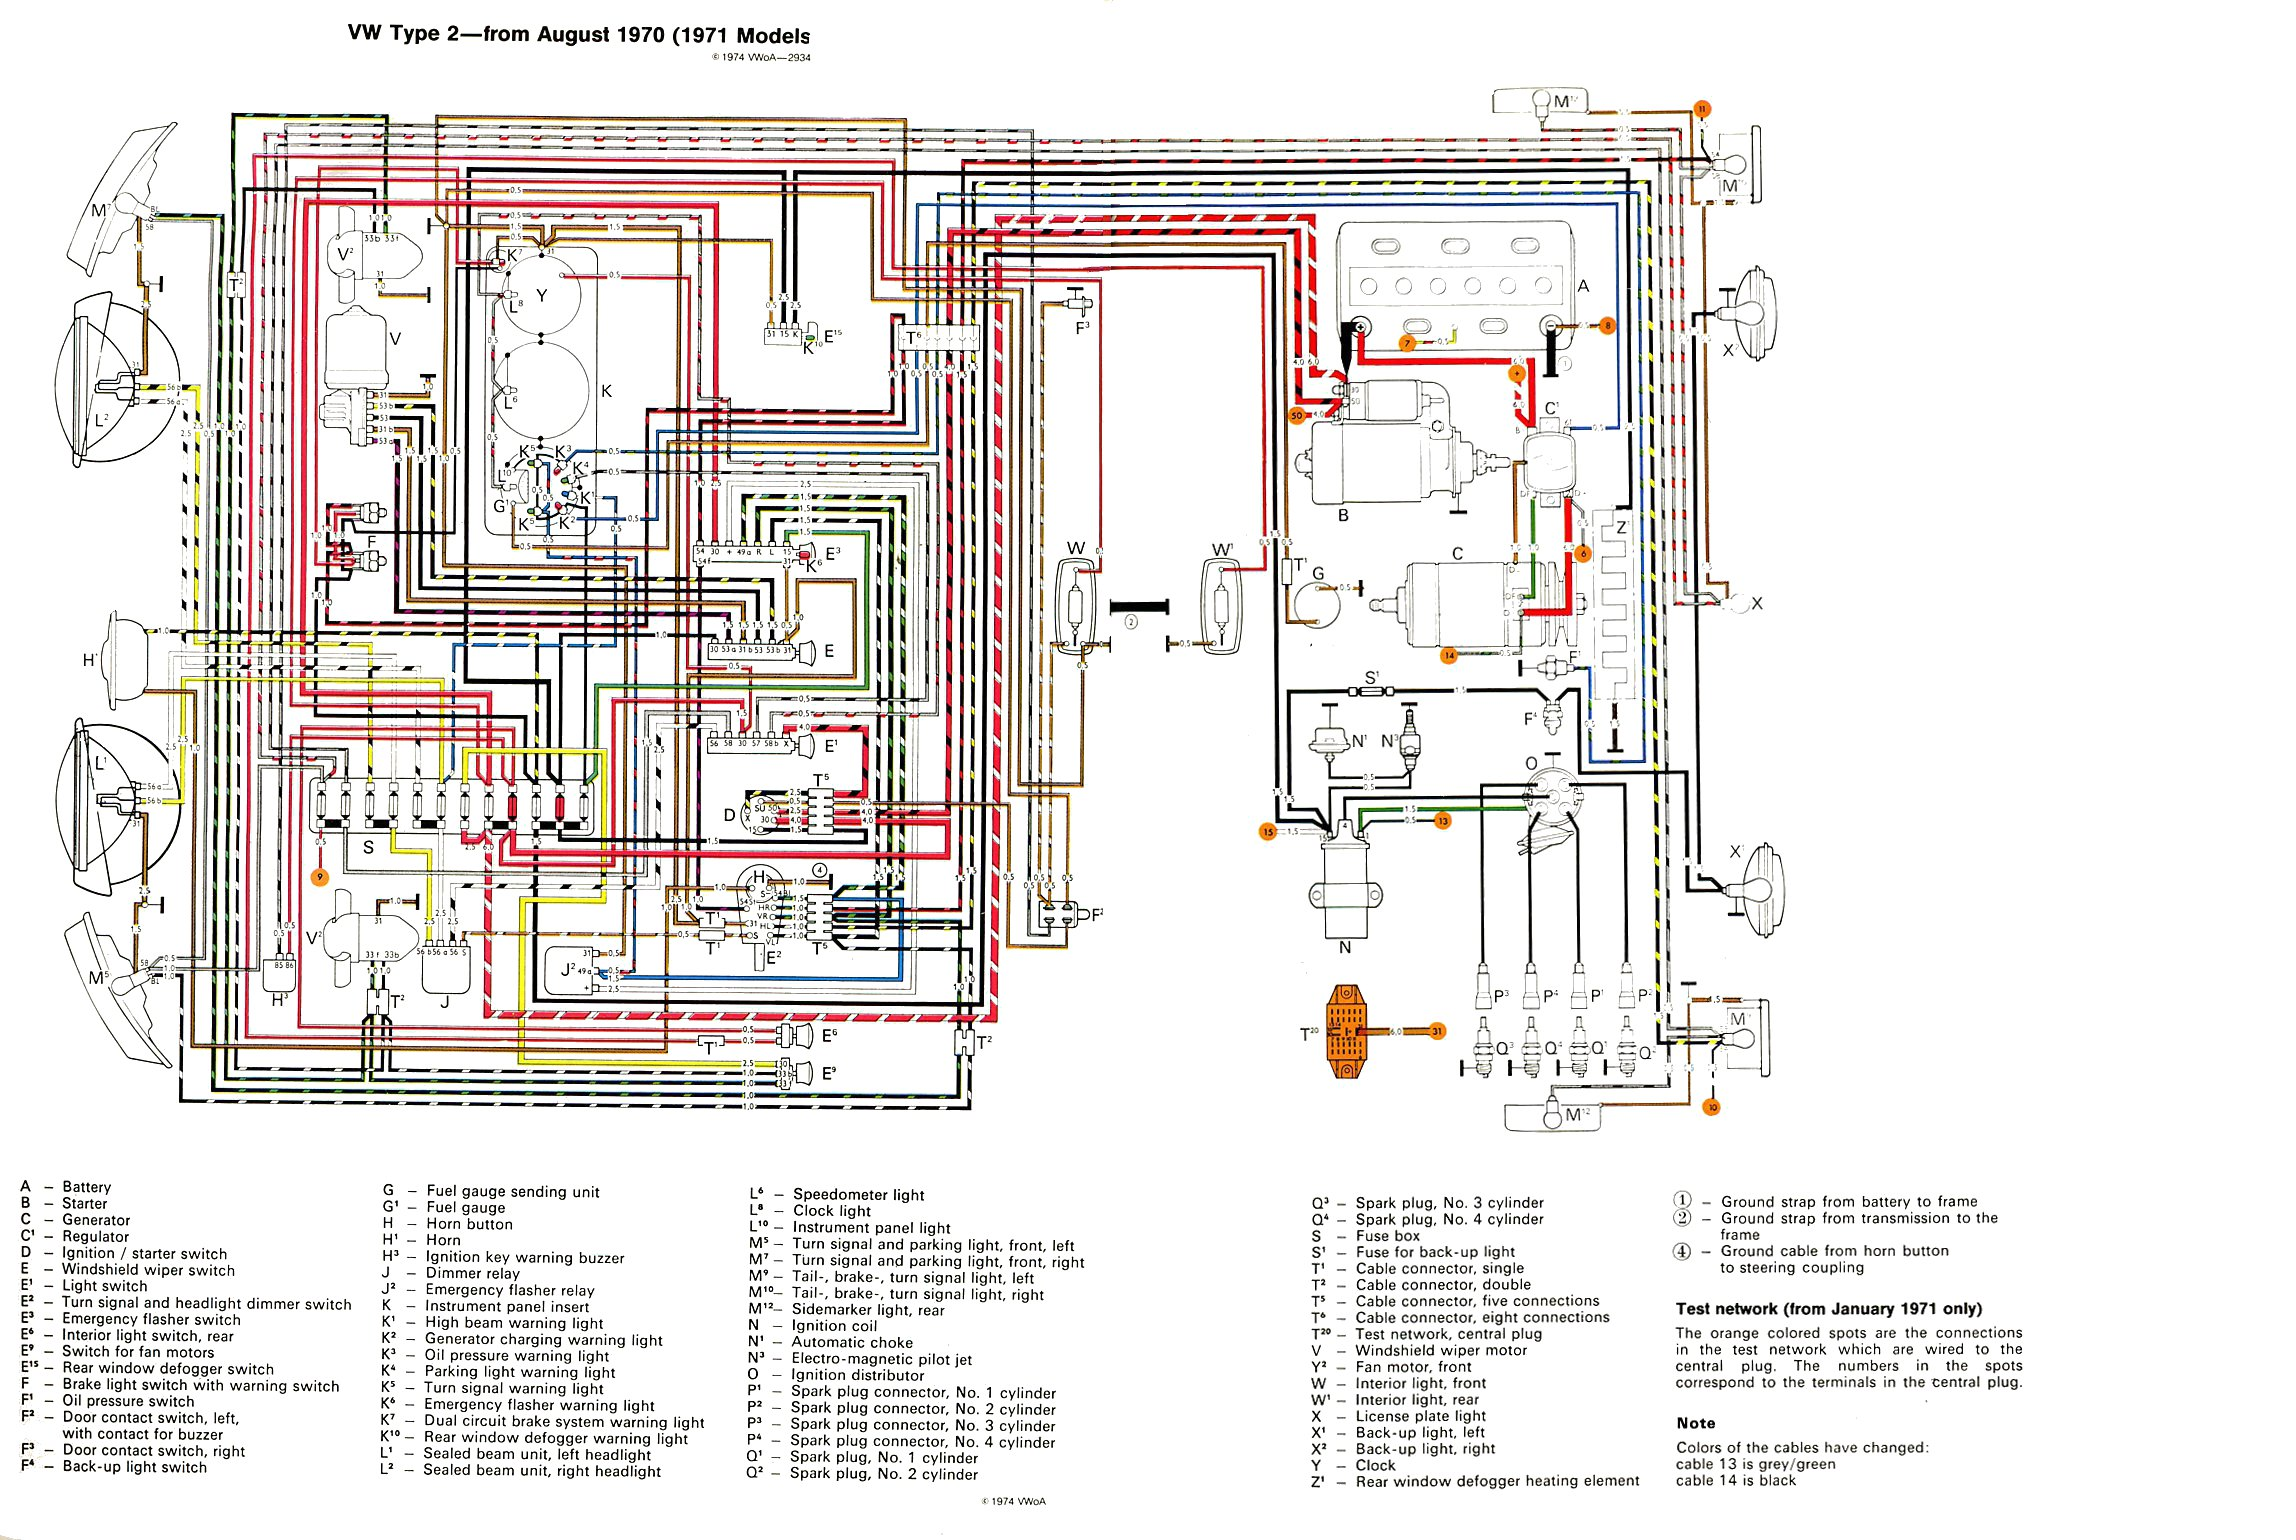 thesamba com type 2 wiring diagrams rh thesamba com 4 Wire Wiper Motor Wiring 3 Wire Wiper Motor Wiring